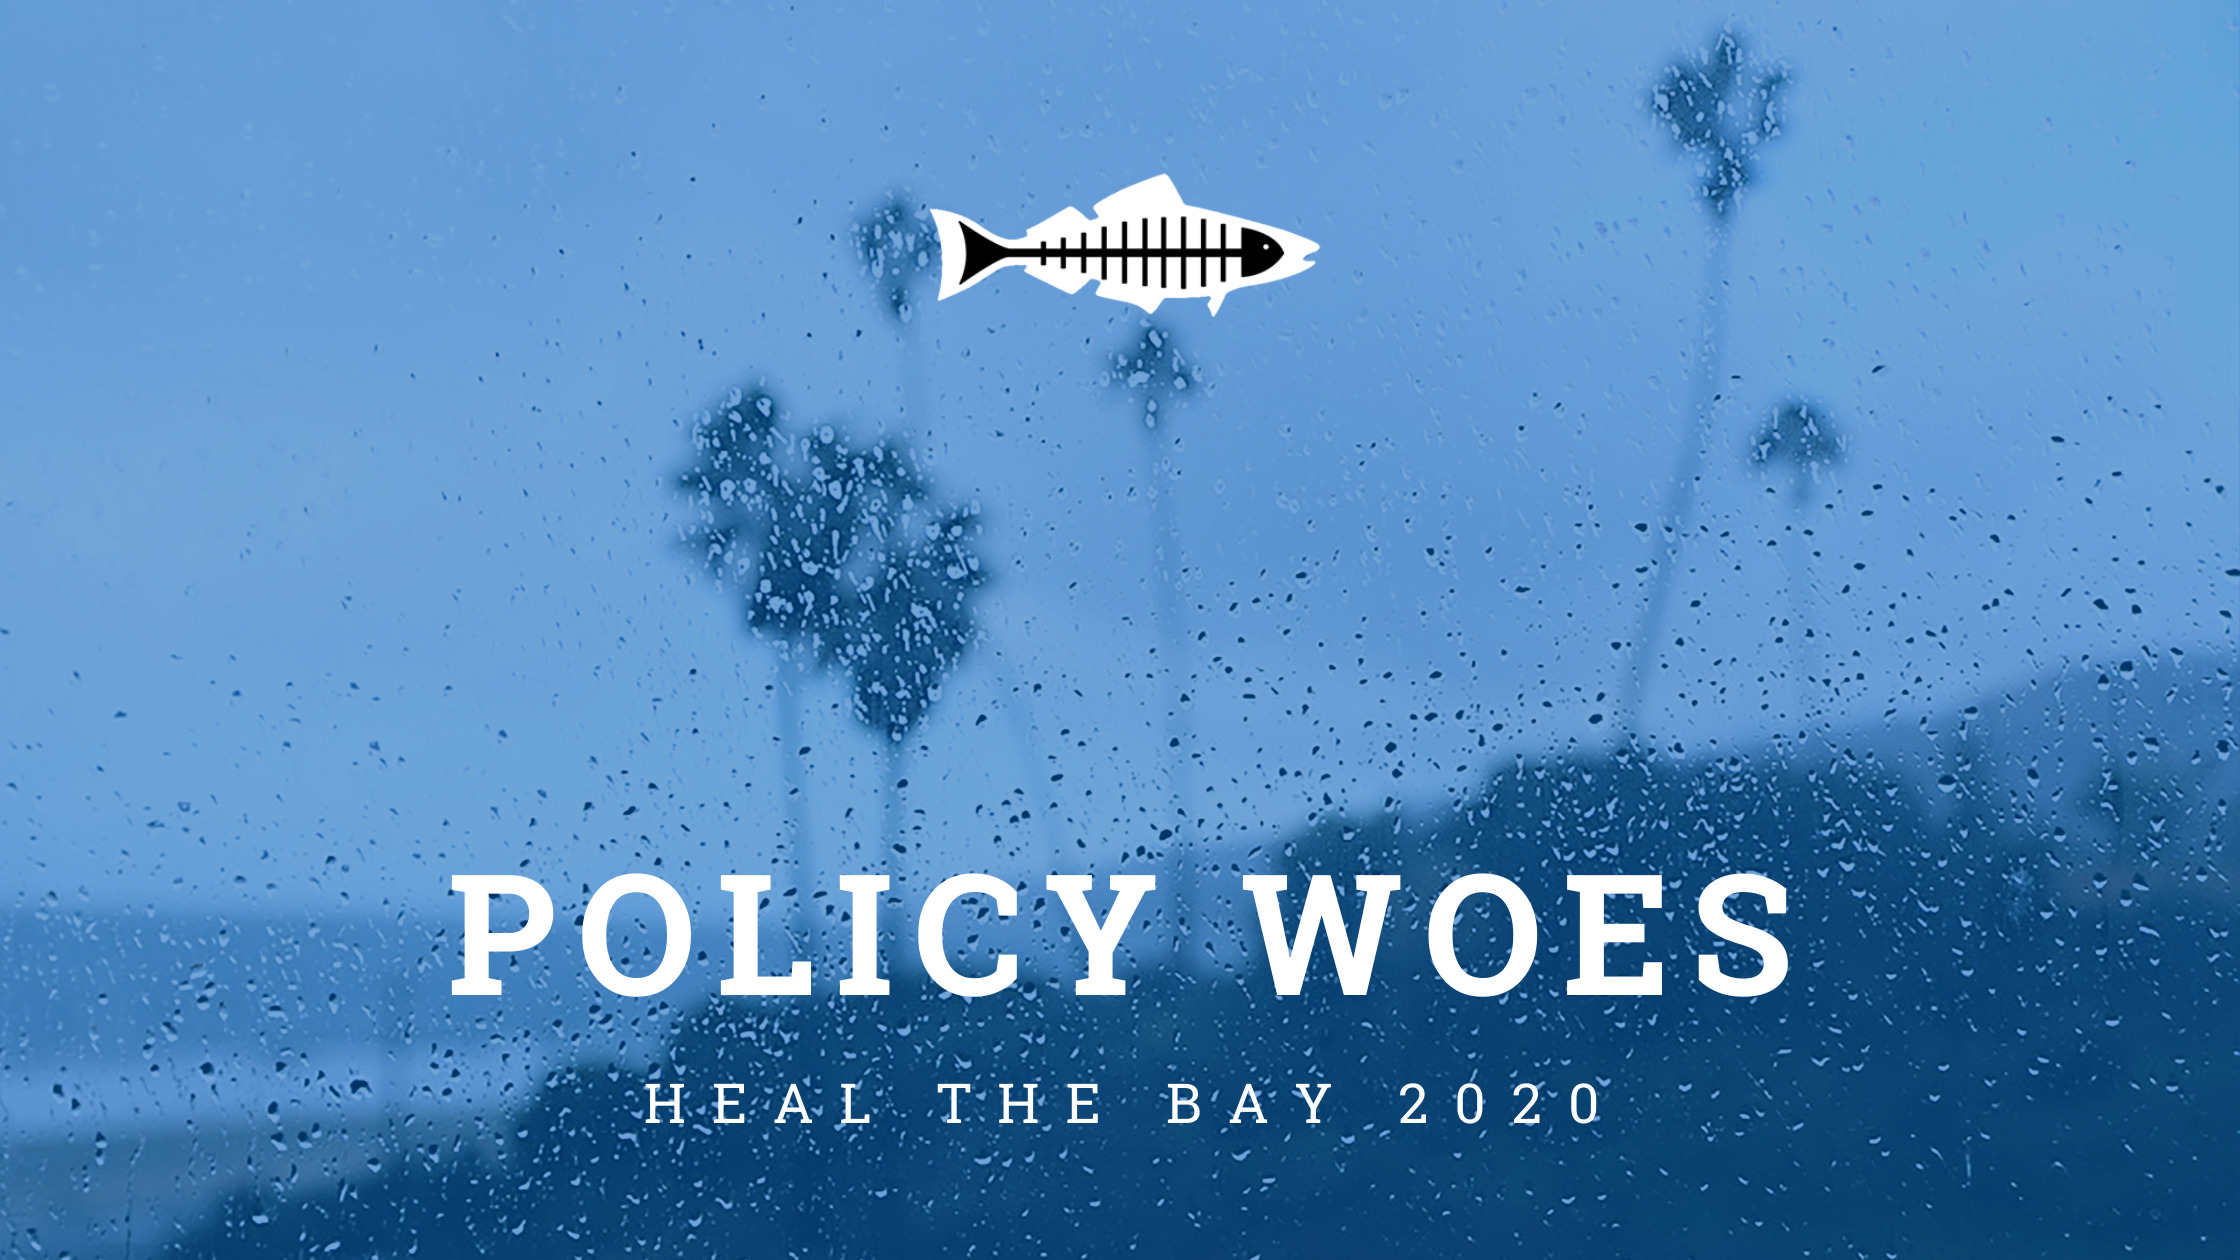 heal the bay environmental policy woes 2020